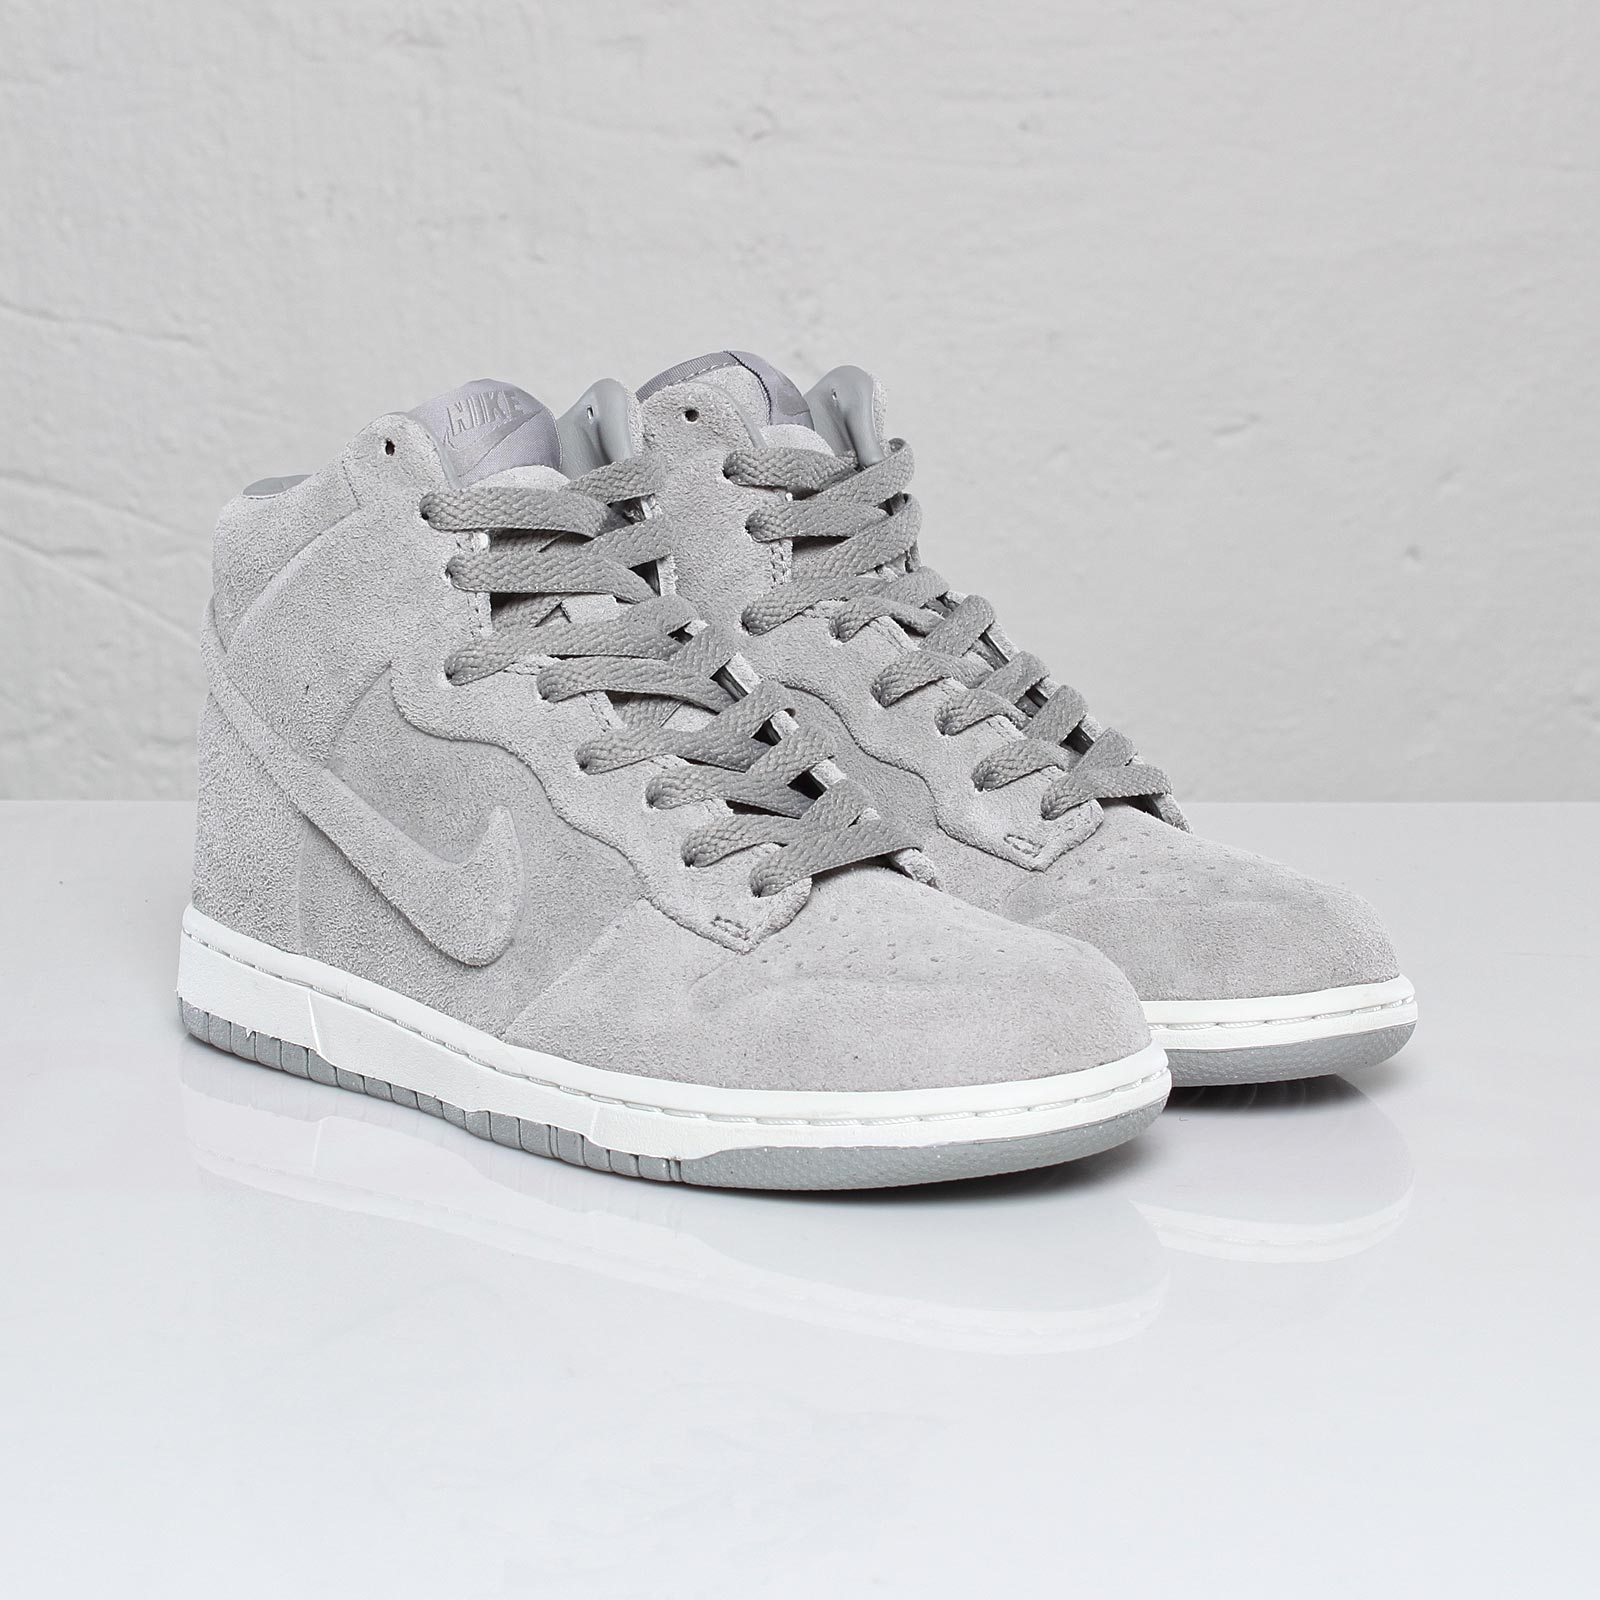 new style ef41b 35091 ... promo code for nike wmns dunk high skinny prm a2933 34500 ...